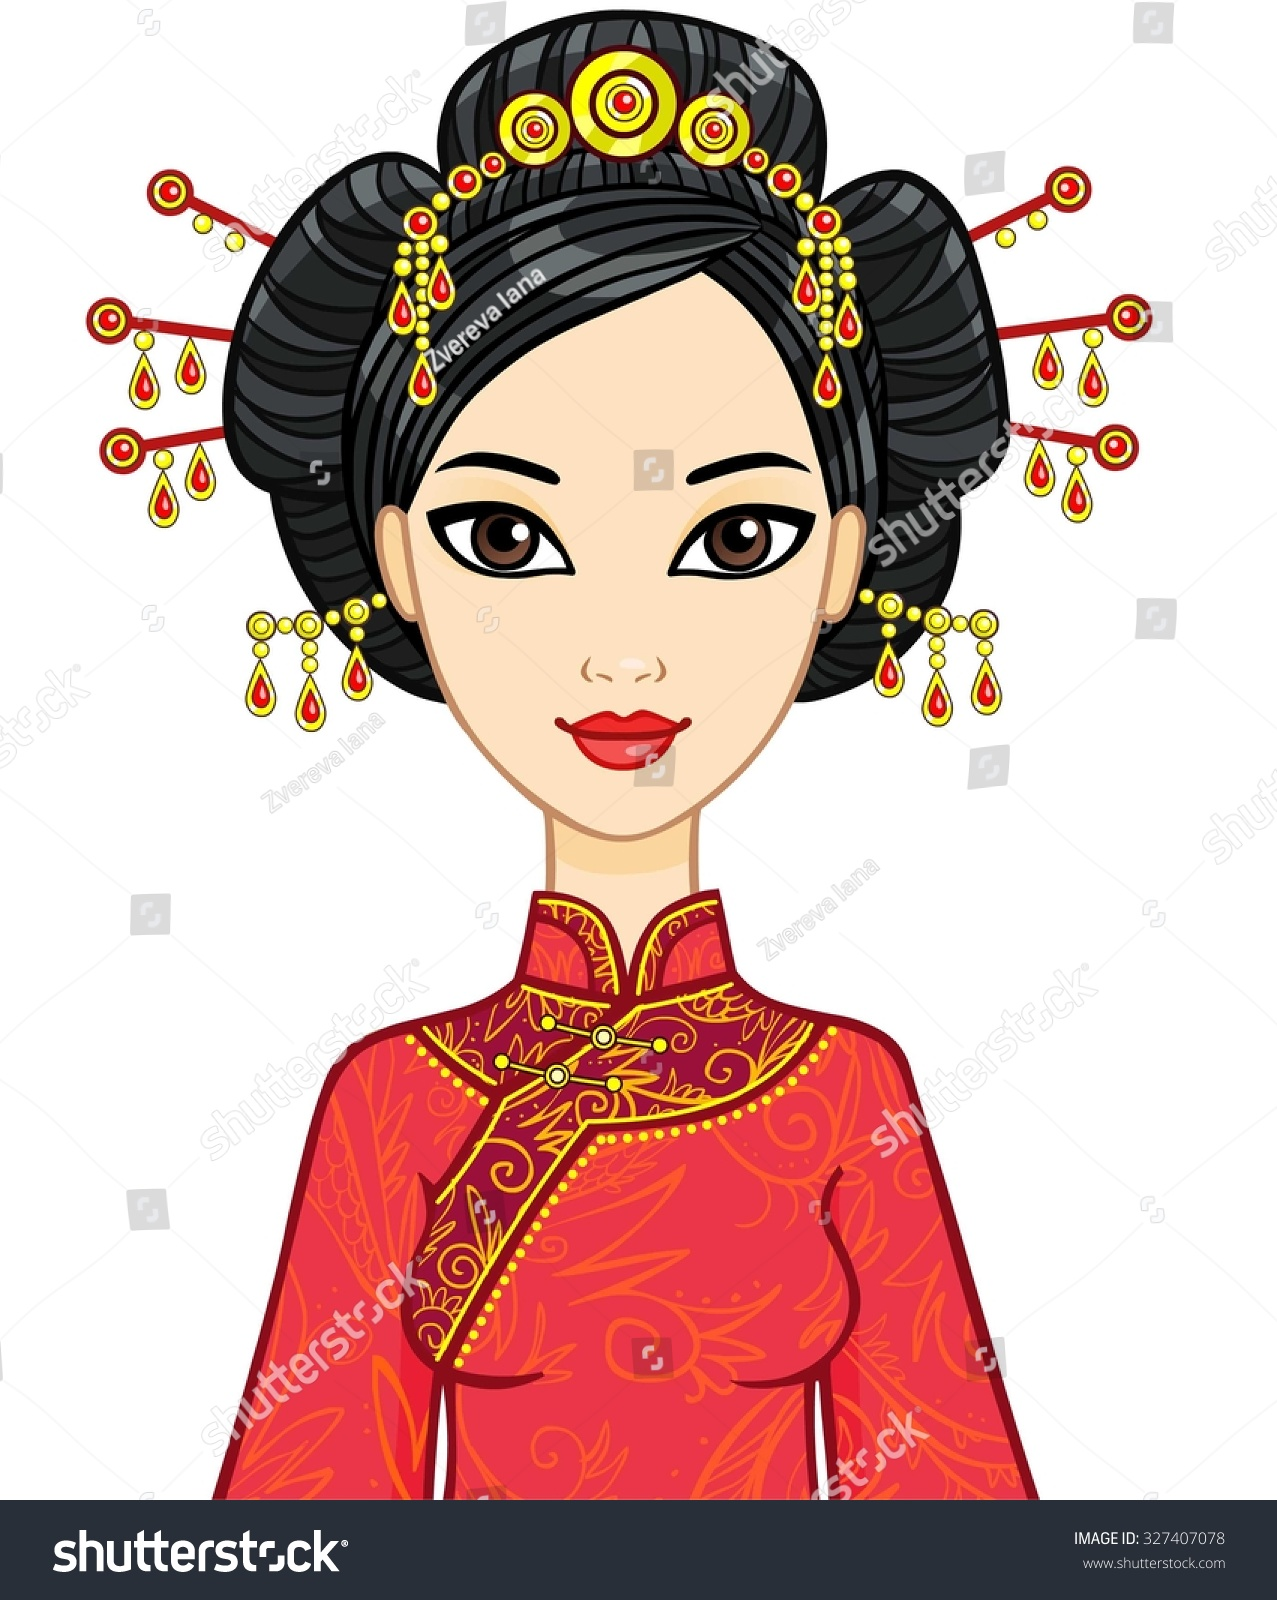 Animation Portrait Of The Chinese Girl In Traditional Clothes With An Ancient Hairstyle